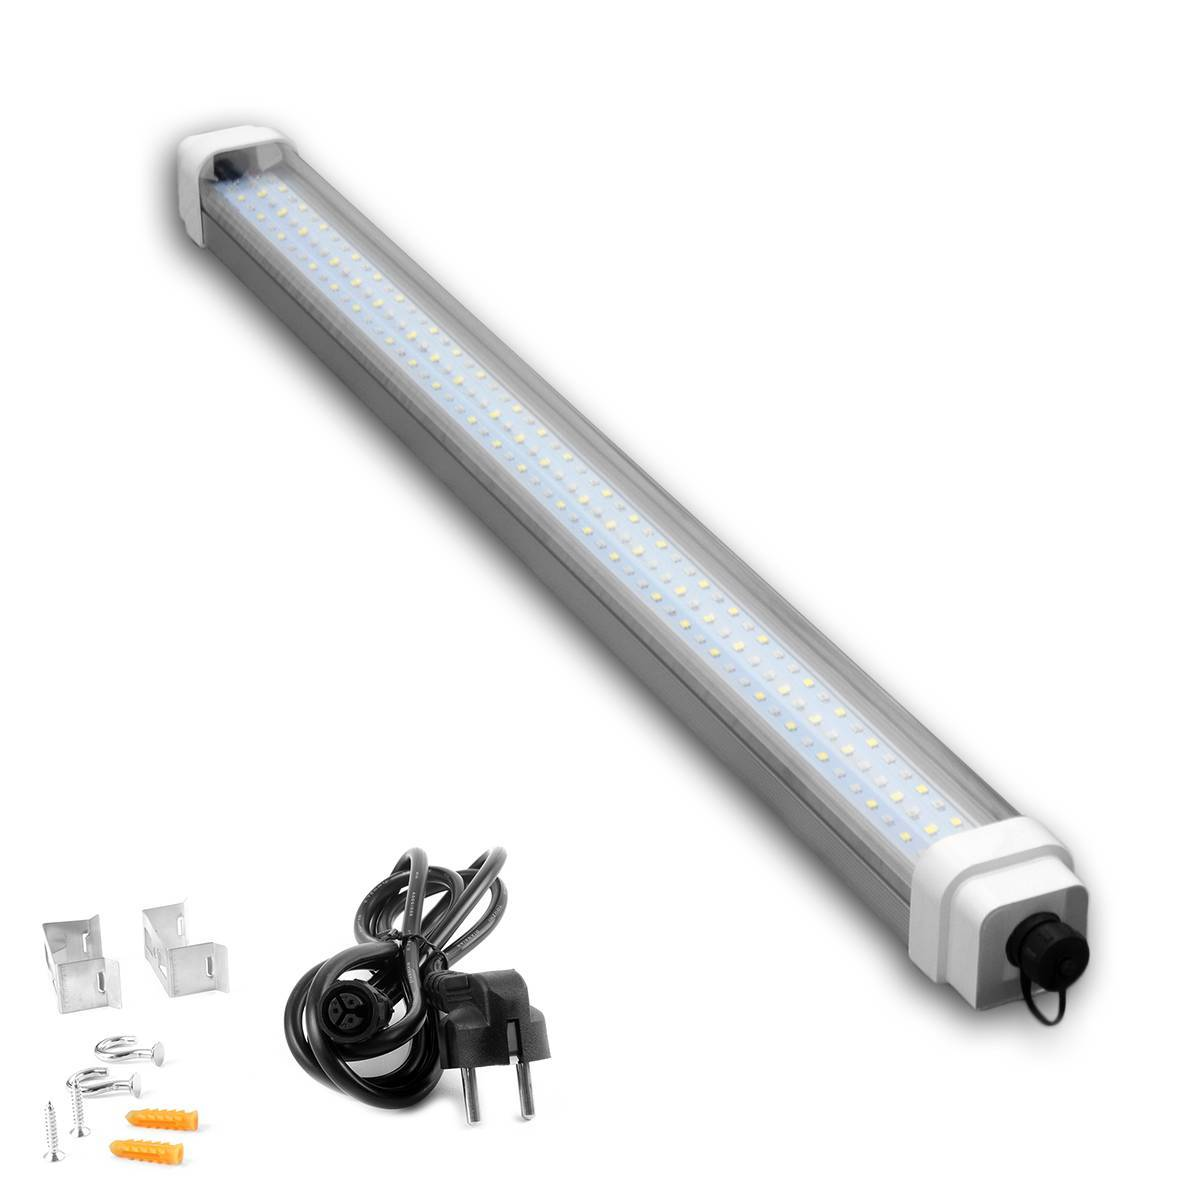 SpectraLINE 120cm - Eclairage LED special bouturage